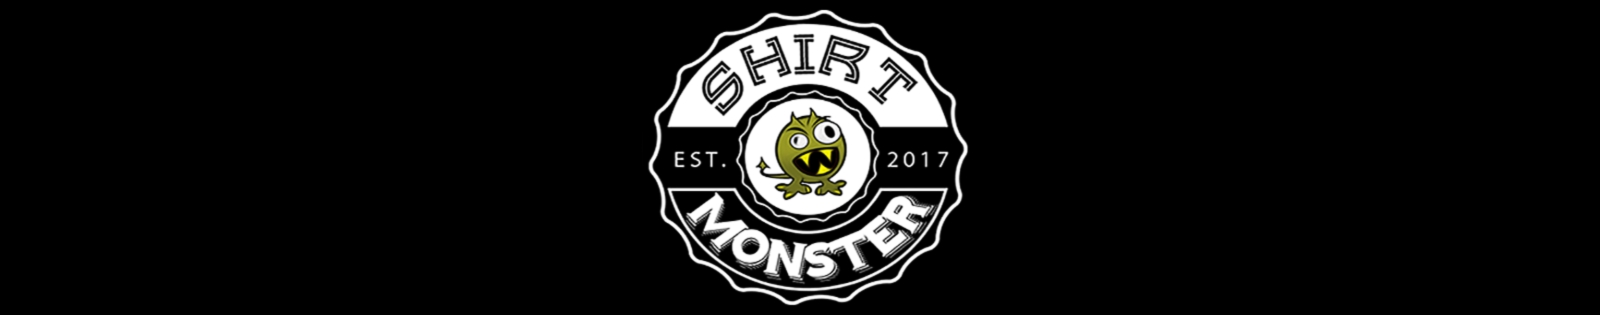 Showroom - Shirtmonster-Shop